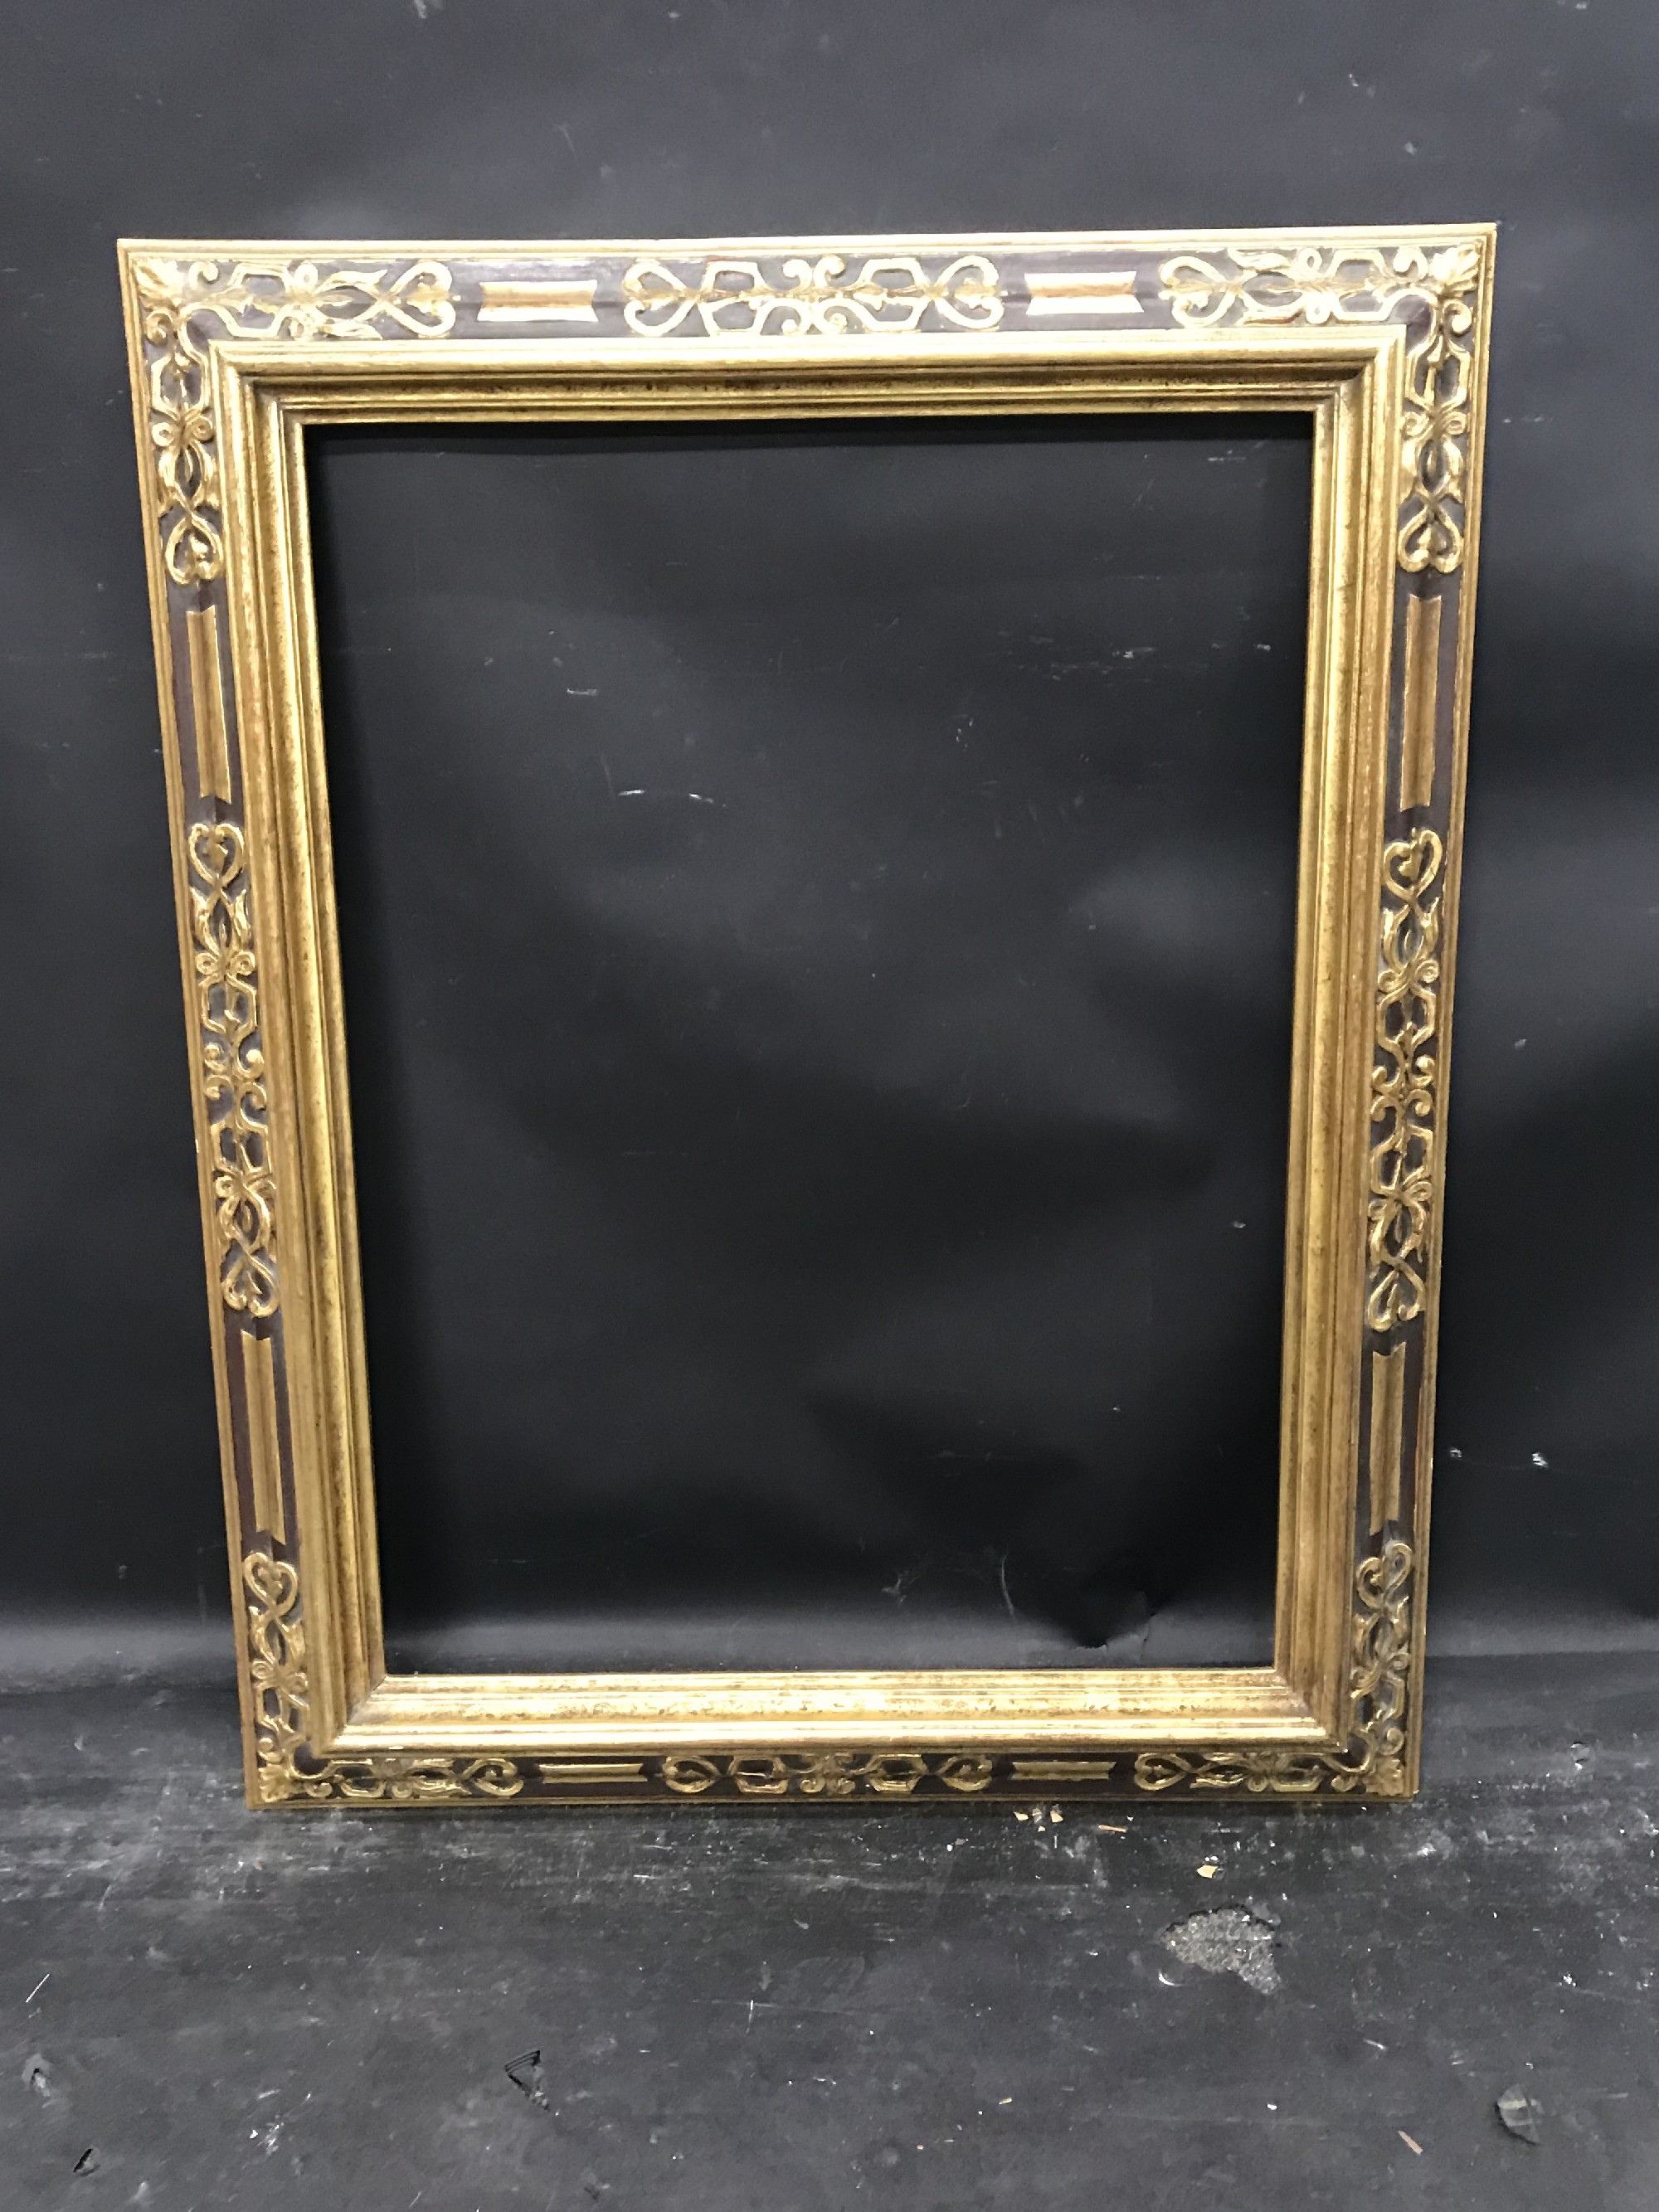 """Lot 44 - 20th Century Spanish School. A Gilt and Black Painted Frame, 26"""" x 19.25""""."""